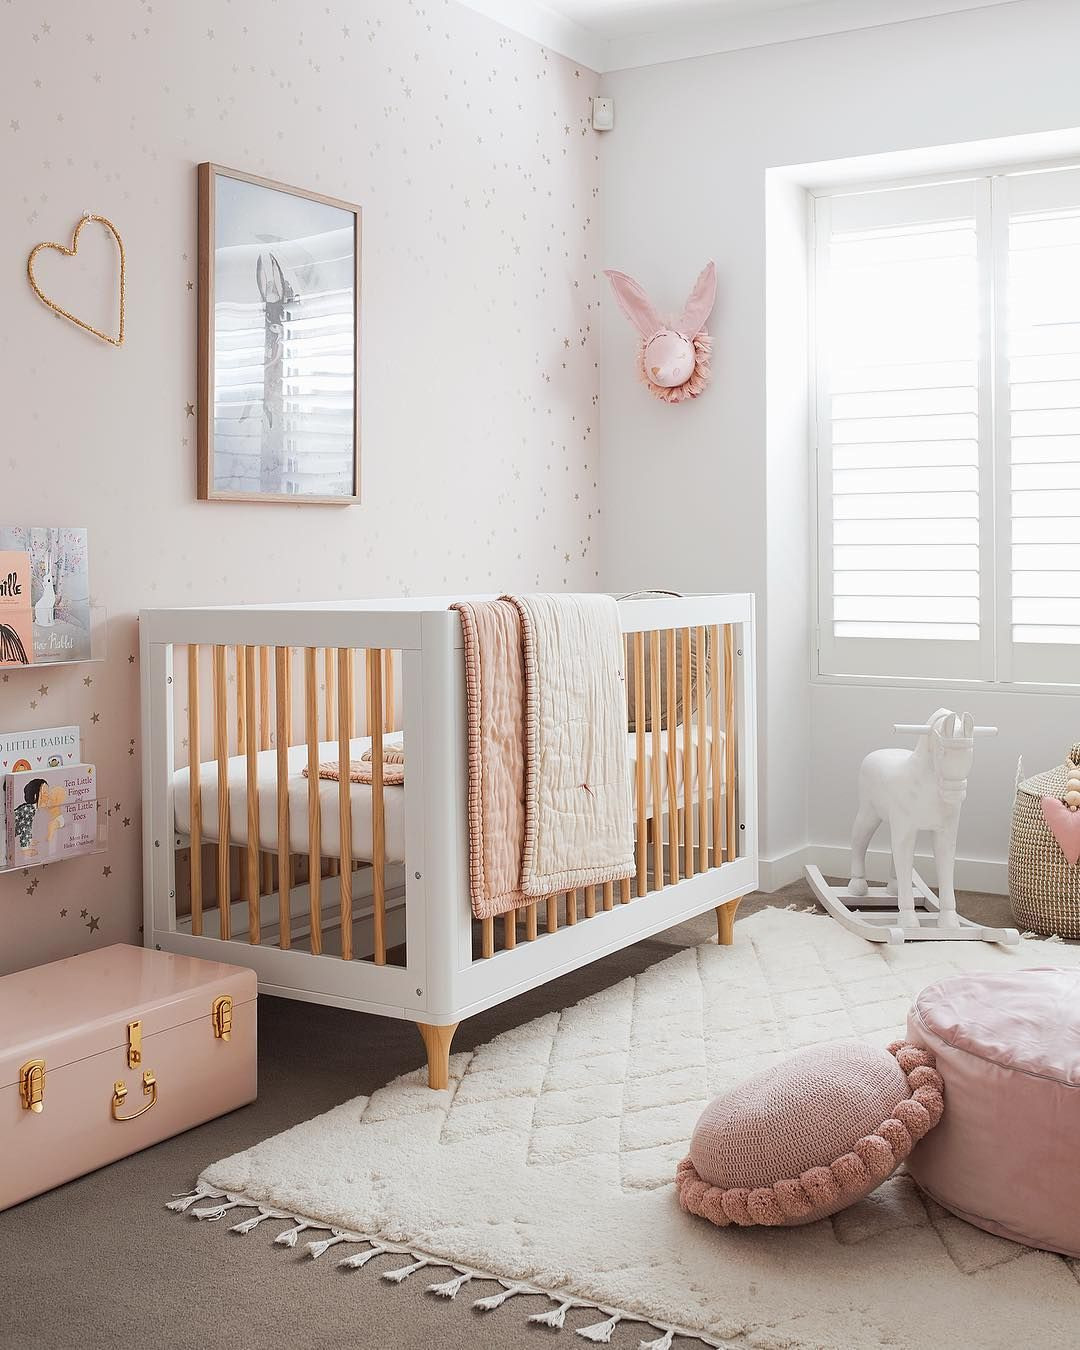 Mia Baby Bedroom Furniture: Pin By Hazelle Praharaj On Home